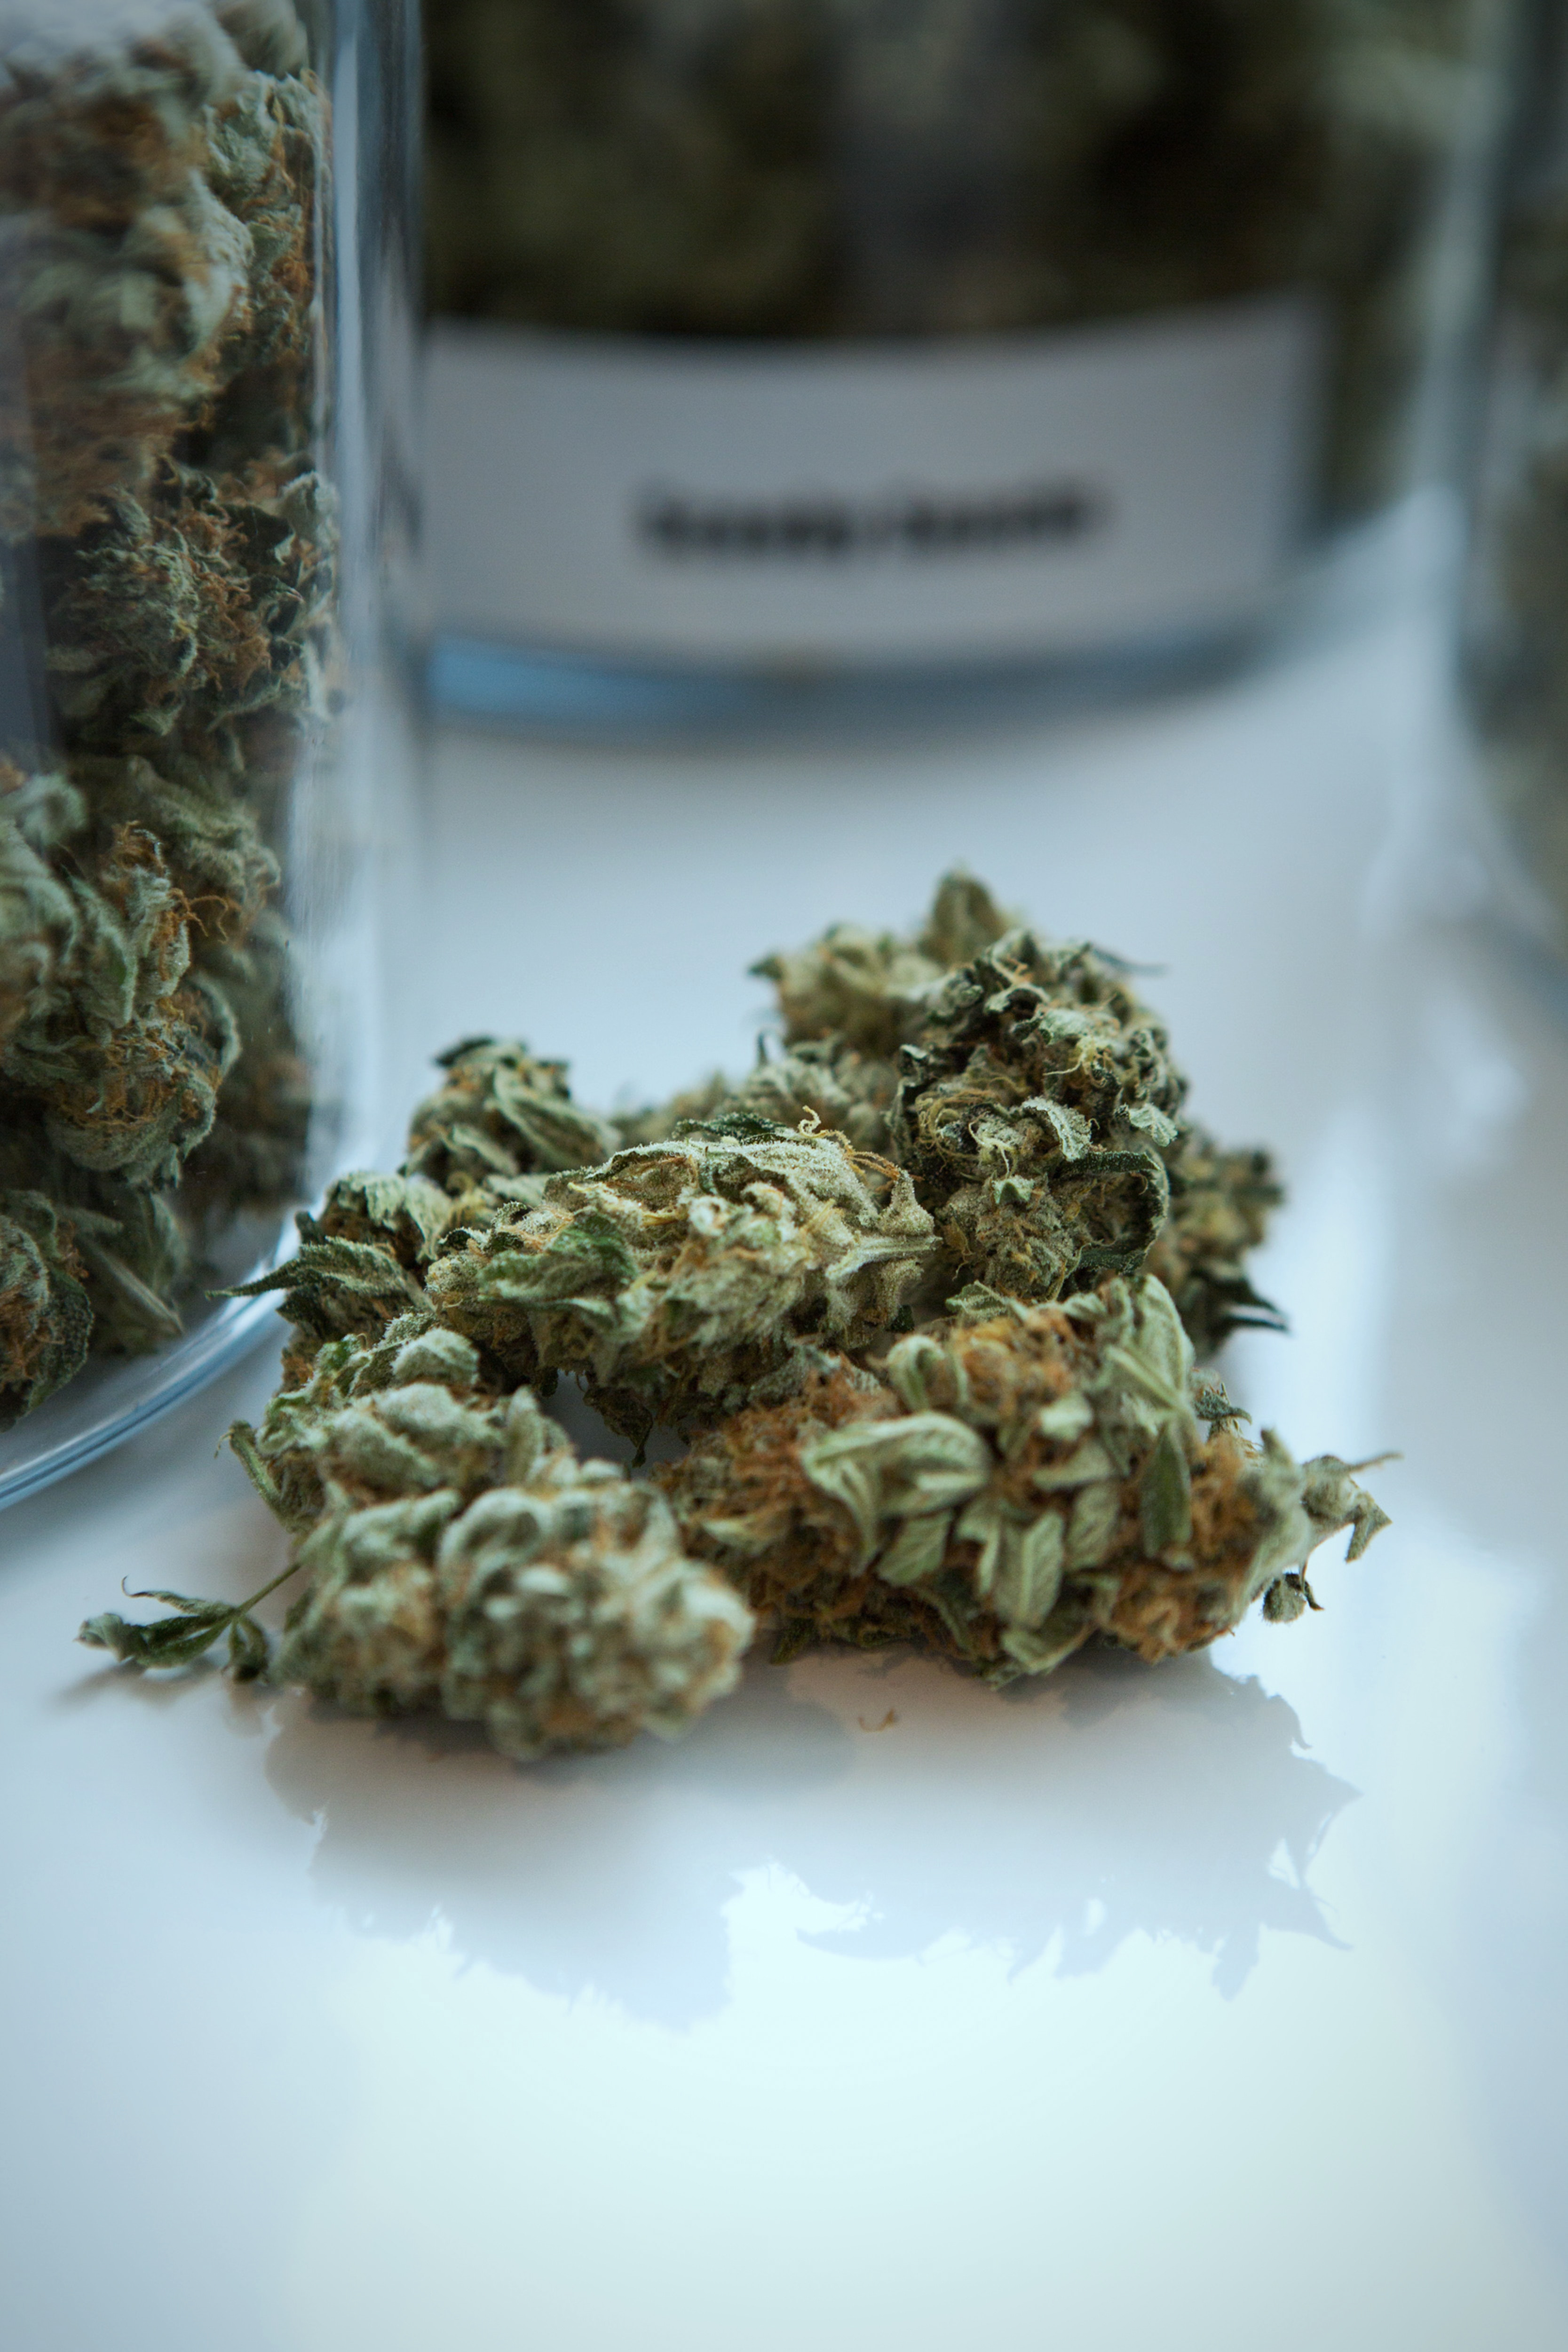 CDPH Cannabis Regulations Approved: Cannabis Waste Provisions